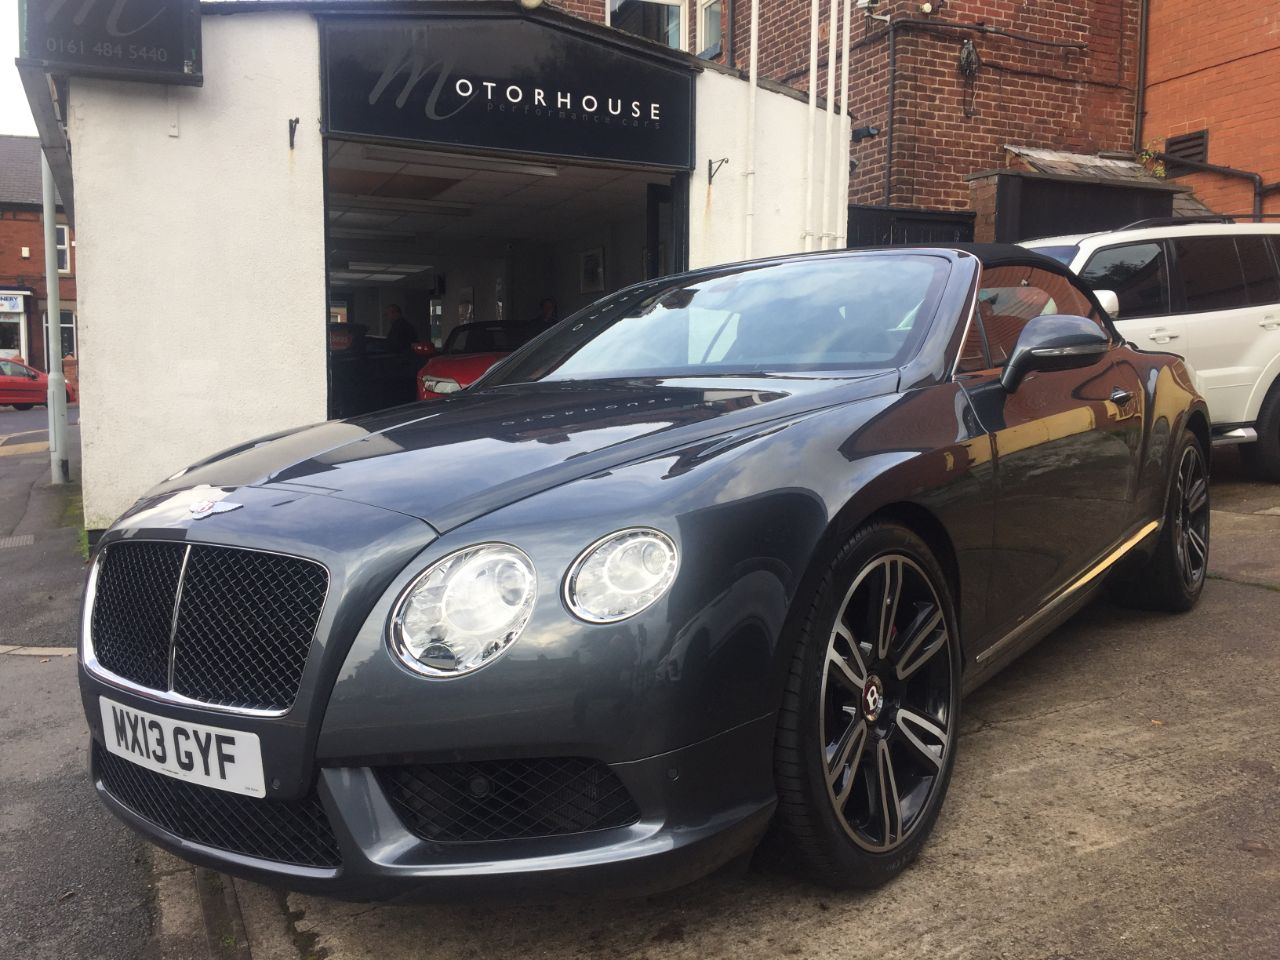 Bentley Continental GTC 4.0 V8 2dr Auto Convertible Petrol Storm Grey at Motorhouse Cheshire Stockport